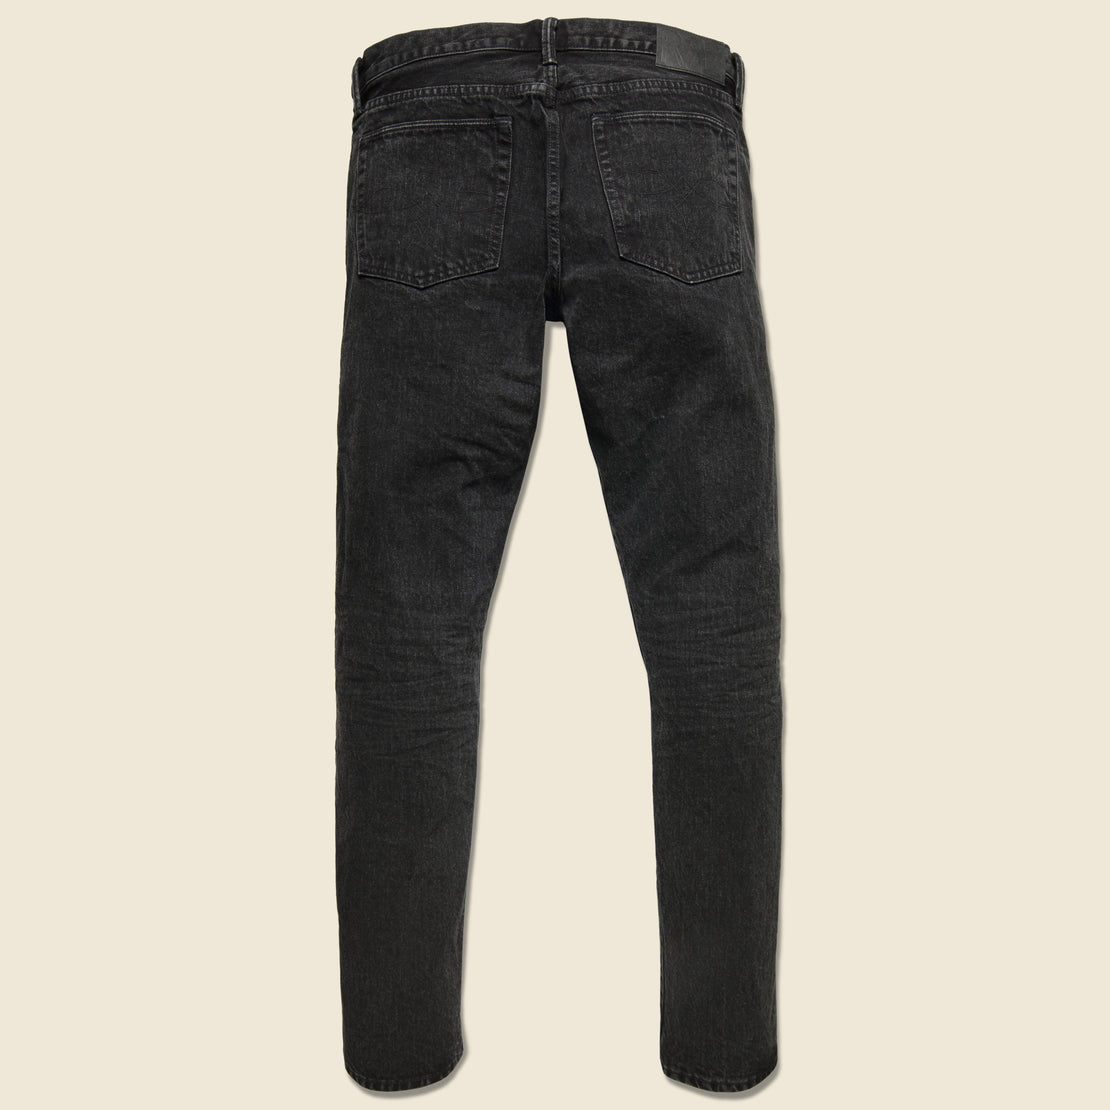 Slim Narrow Jean - Worn-In Black